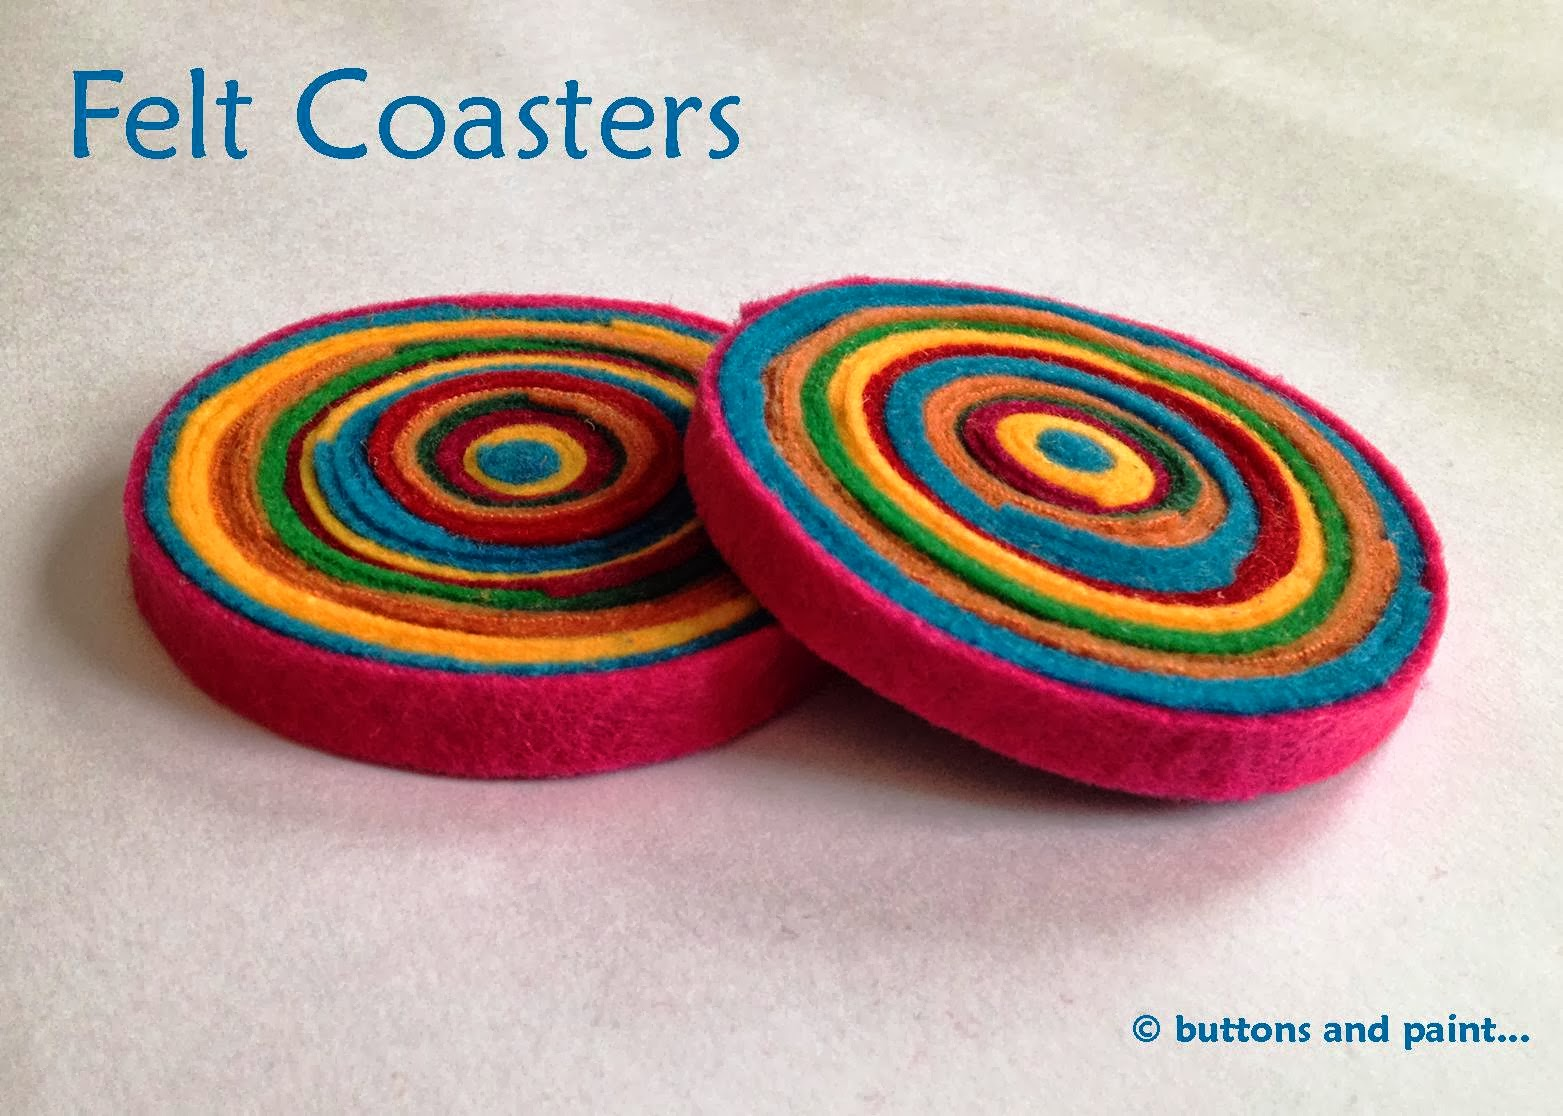 buttons and paint...: and some Felt Coasters